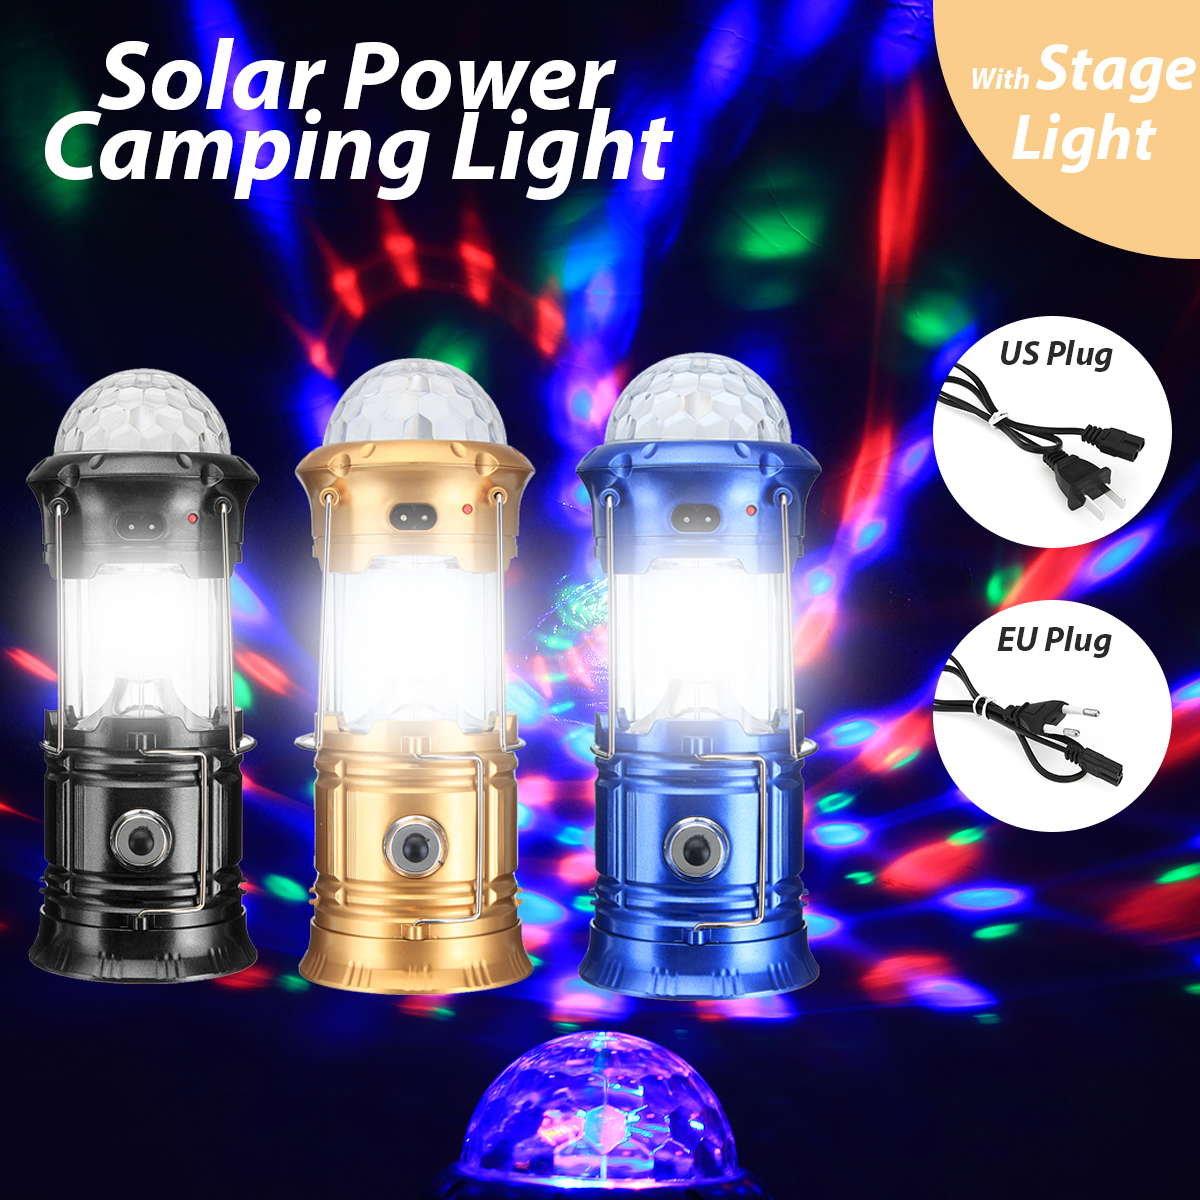 3 In 1 Portable Camping Tent LED Stage Flashlight Solar USB Rechargeable Torch Emergency Night Lamp